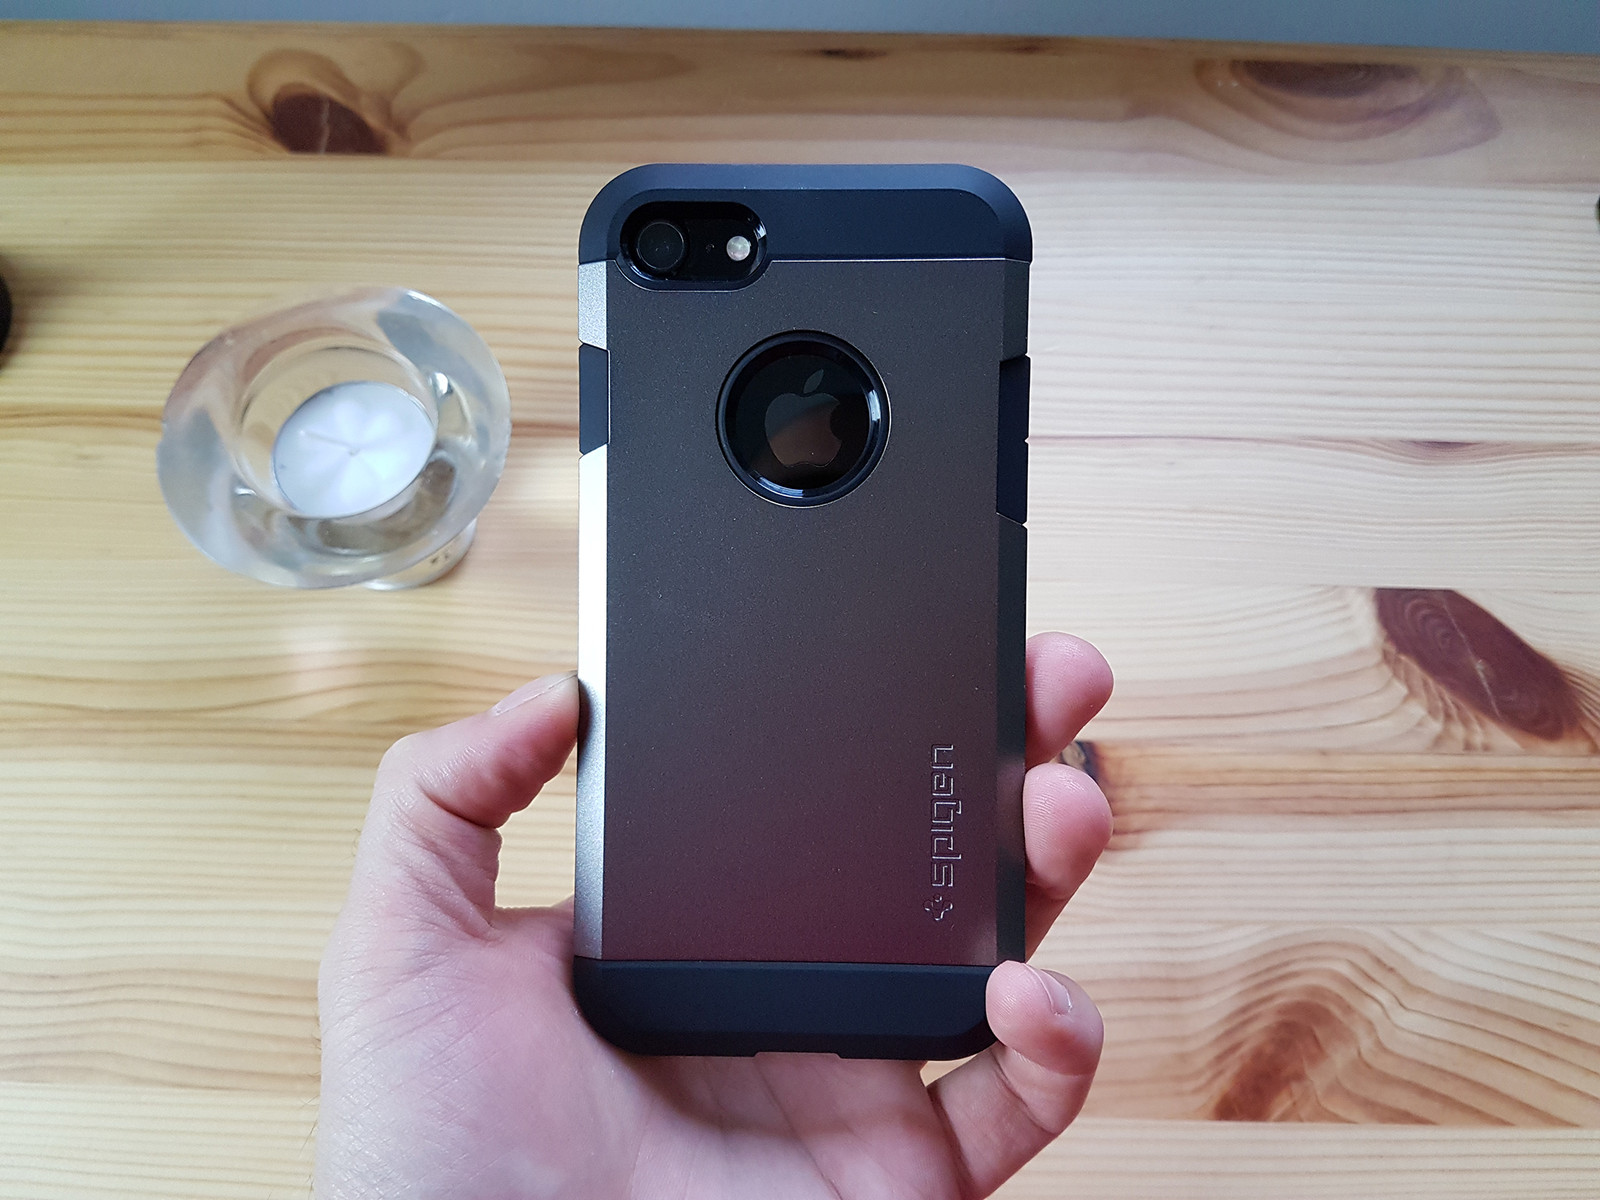 The Best iPhone 7 Cases and Covers